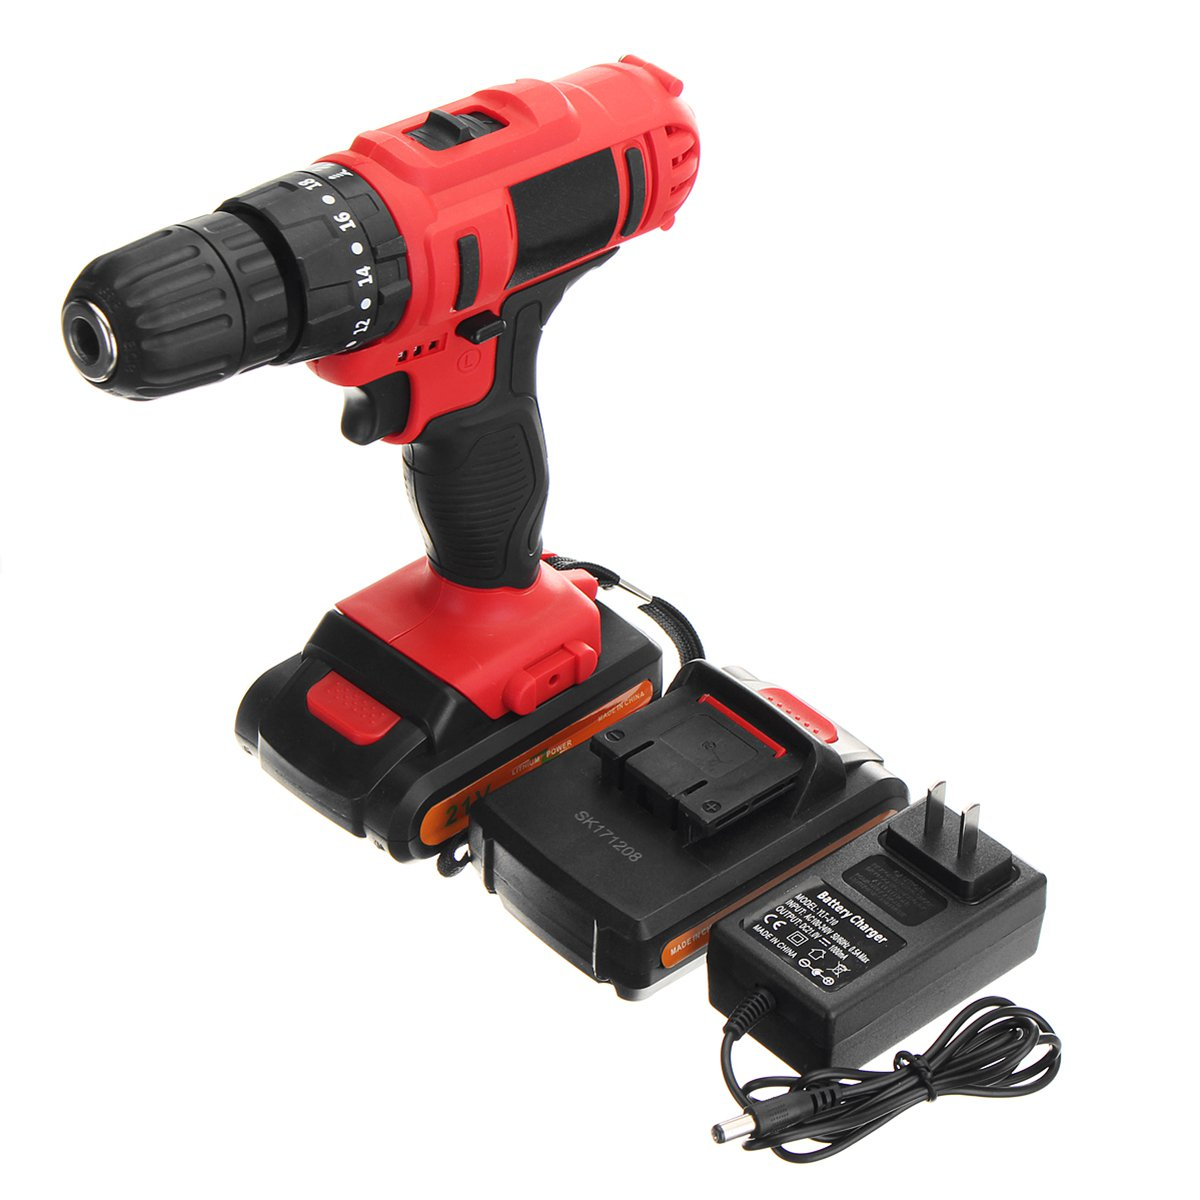 21V Cordless Rechargeable Screwdriver Li ion Torque Drill Mini Electric Screwdriver Home Waterproof Power Tools New Arrival 1 pc 18v 4000mah rechargeable battery pack power tools batteries replacement cordless for bosch drill bat610 li ion